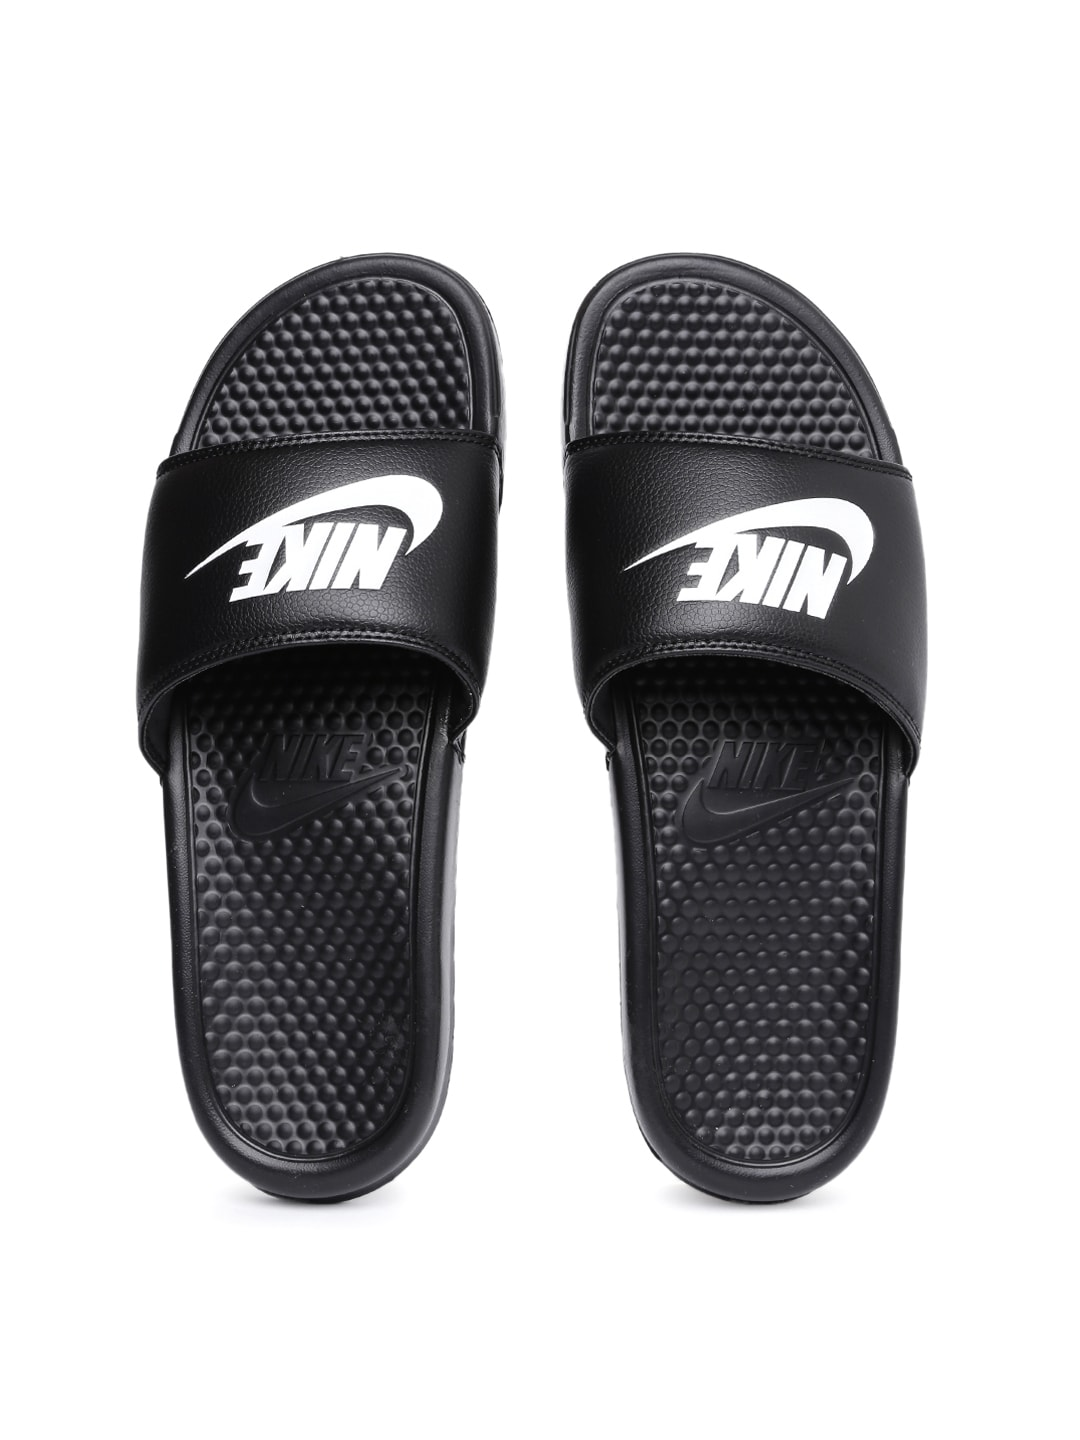 303b84e8dc5ef Nike Slipper - Buy Nike Slipper Online in India